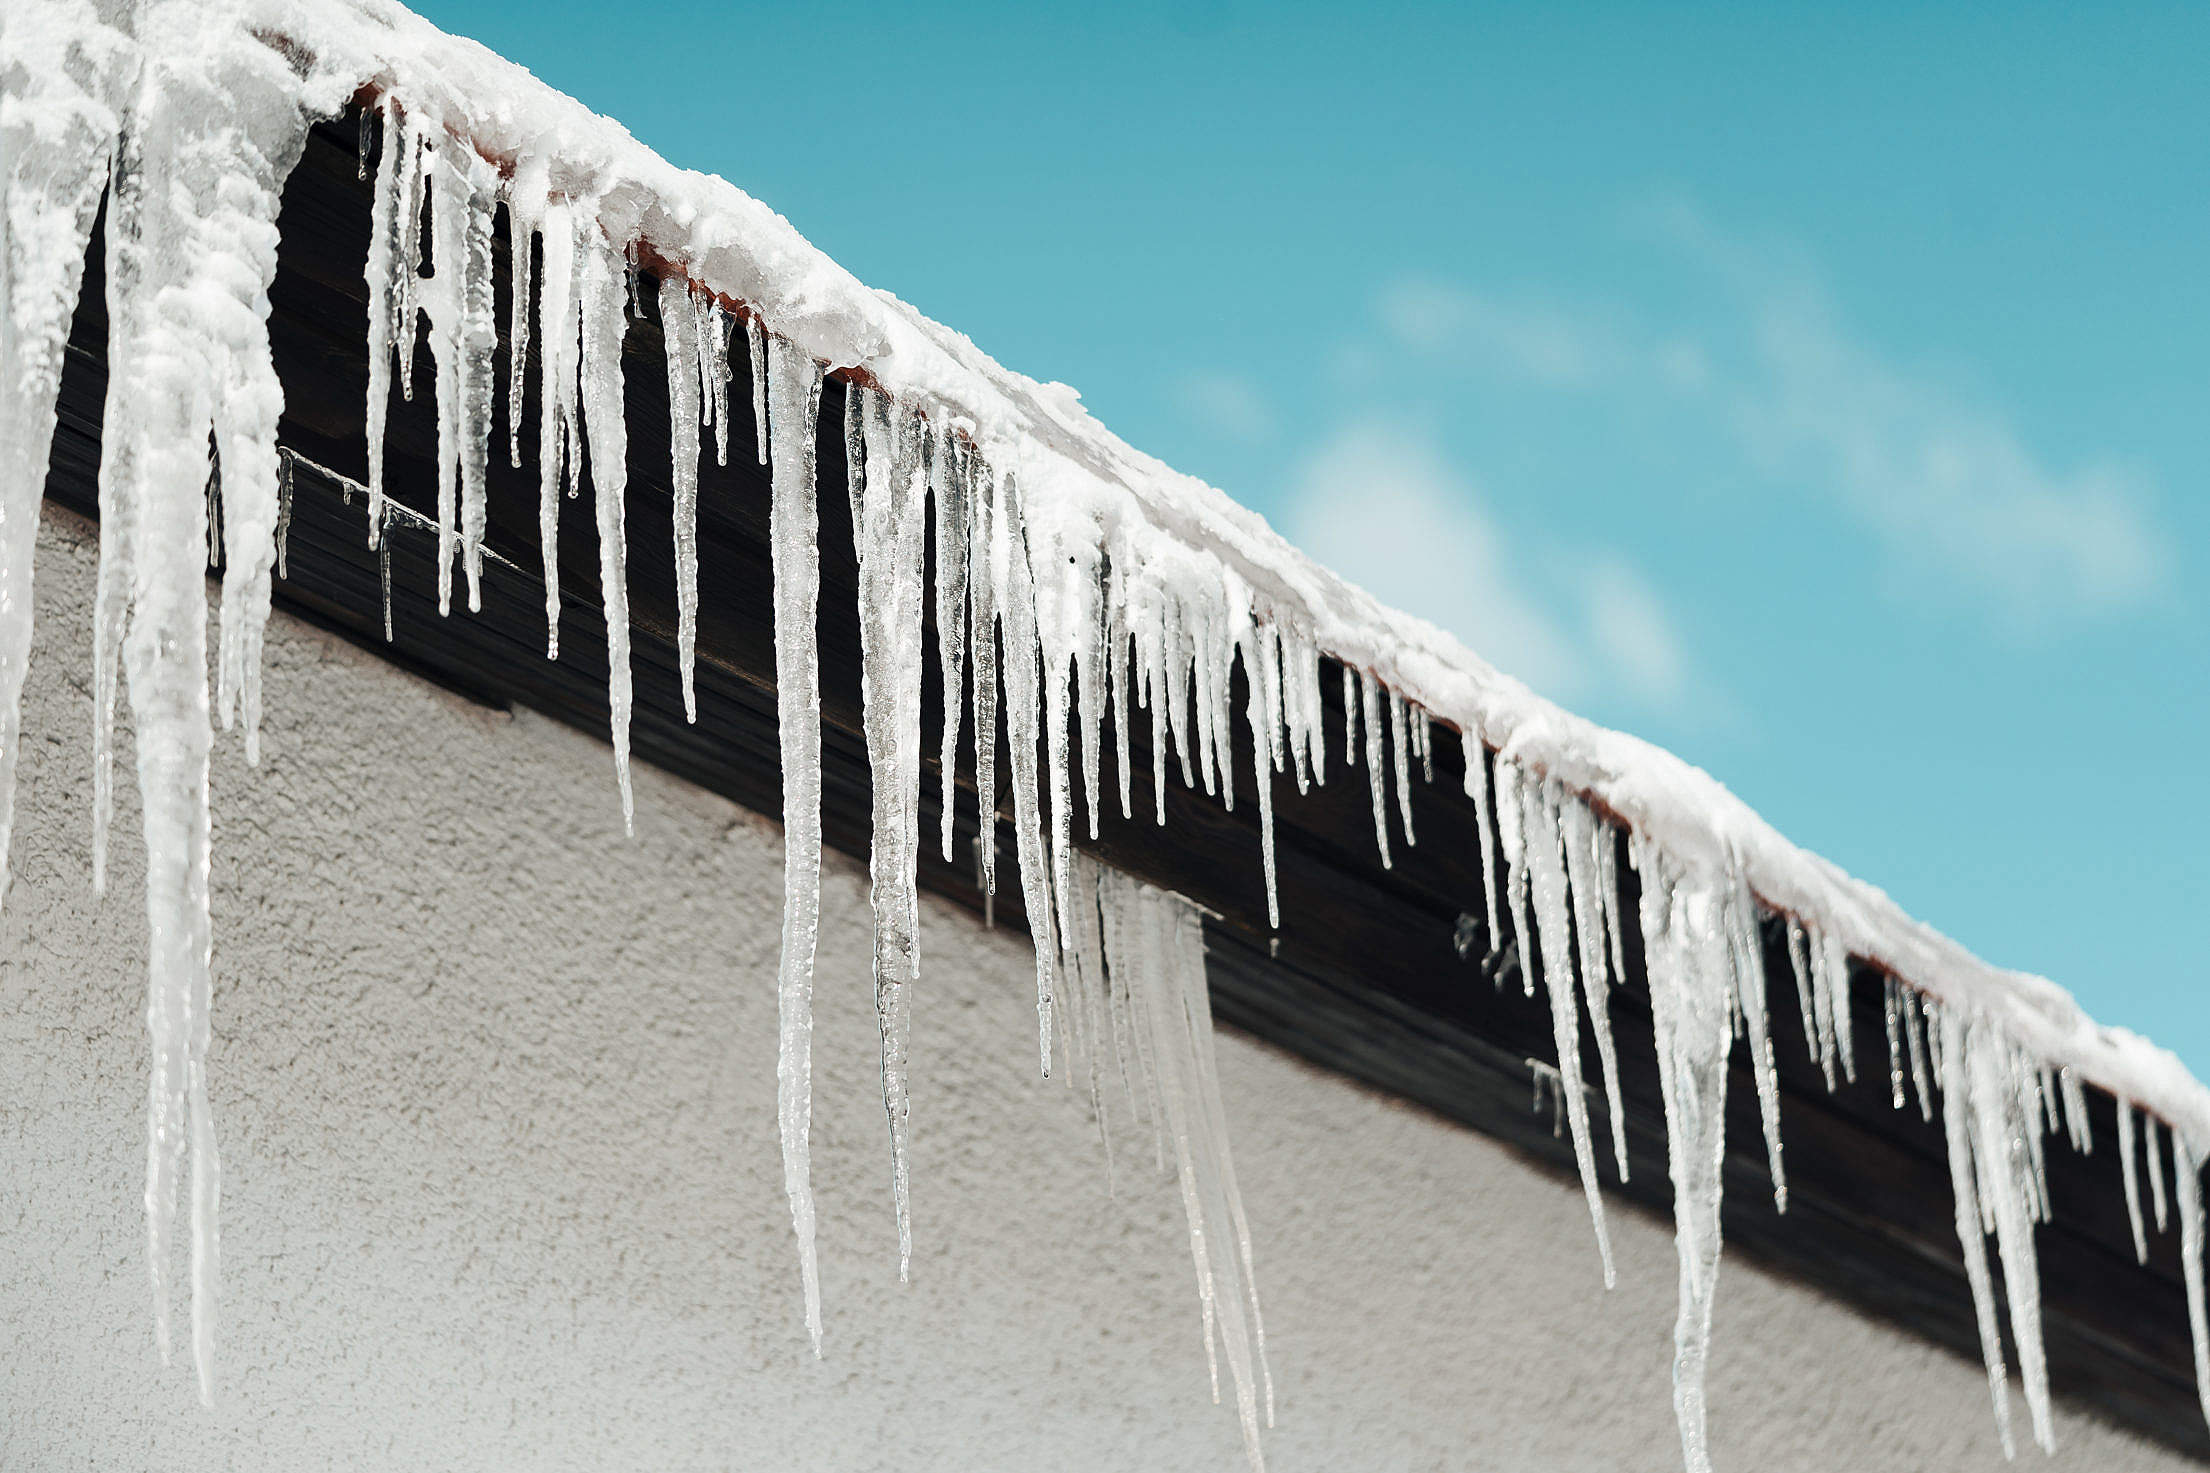 Icicles Hanging from Roof Free Stock Photo